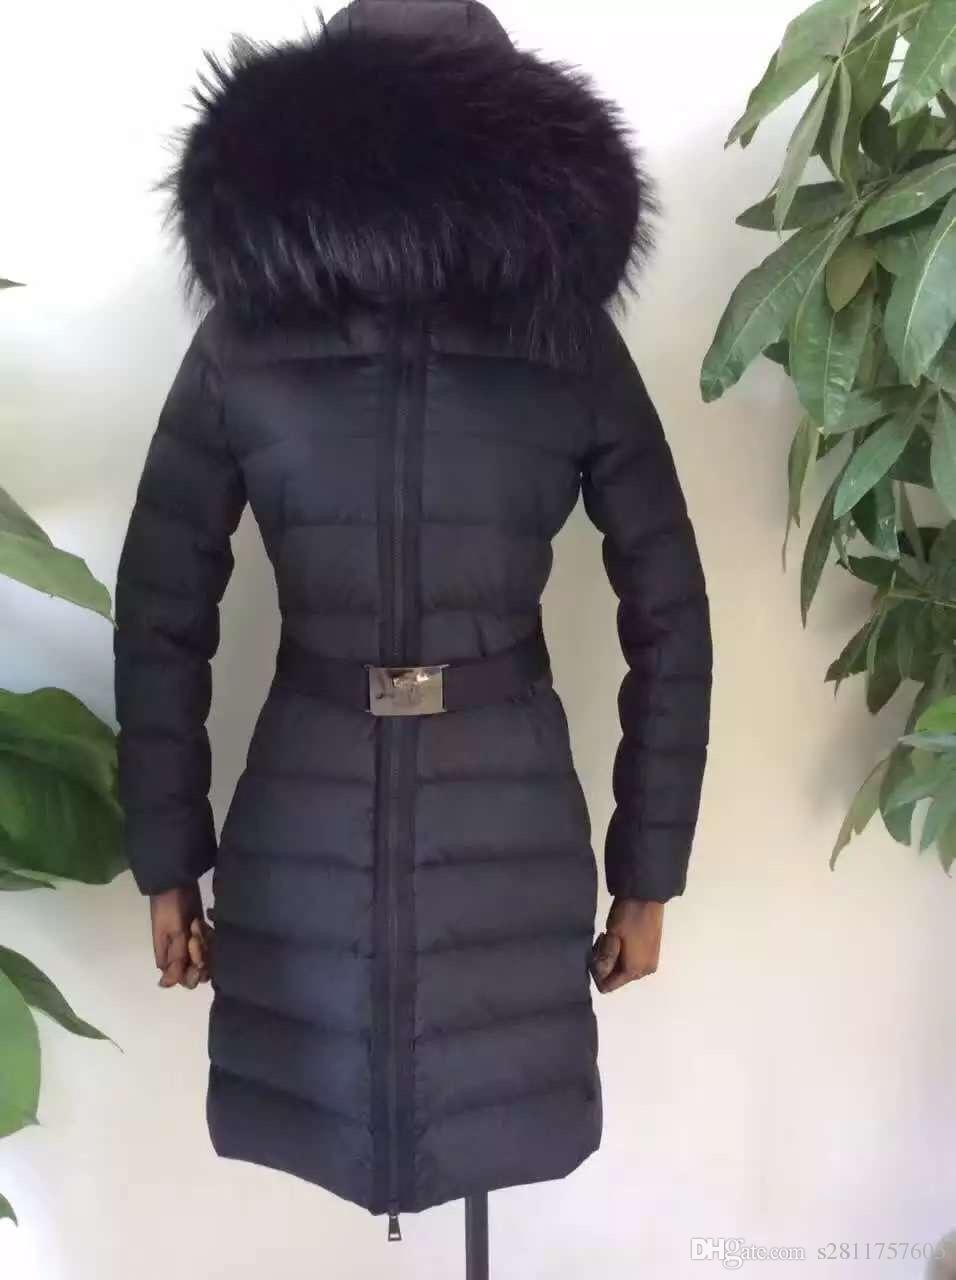 Black Parka Womens Coat Han Coats